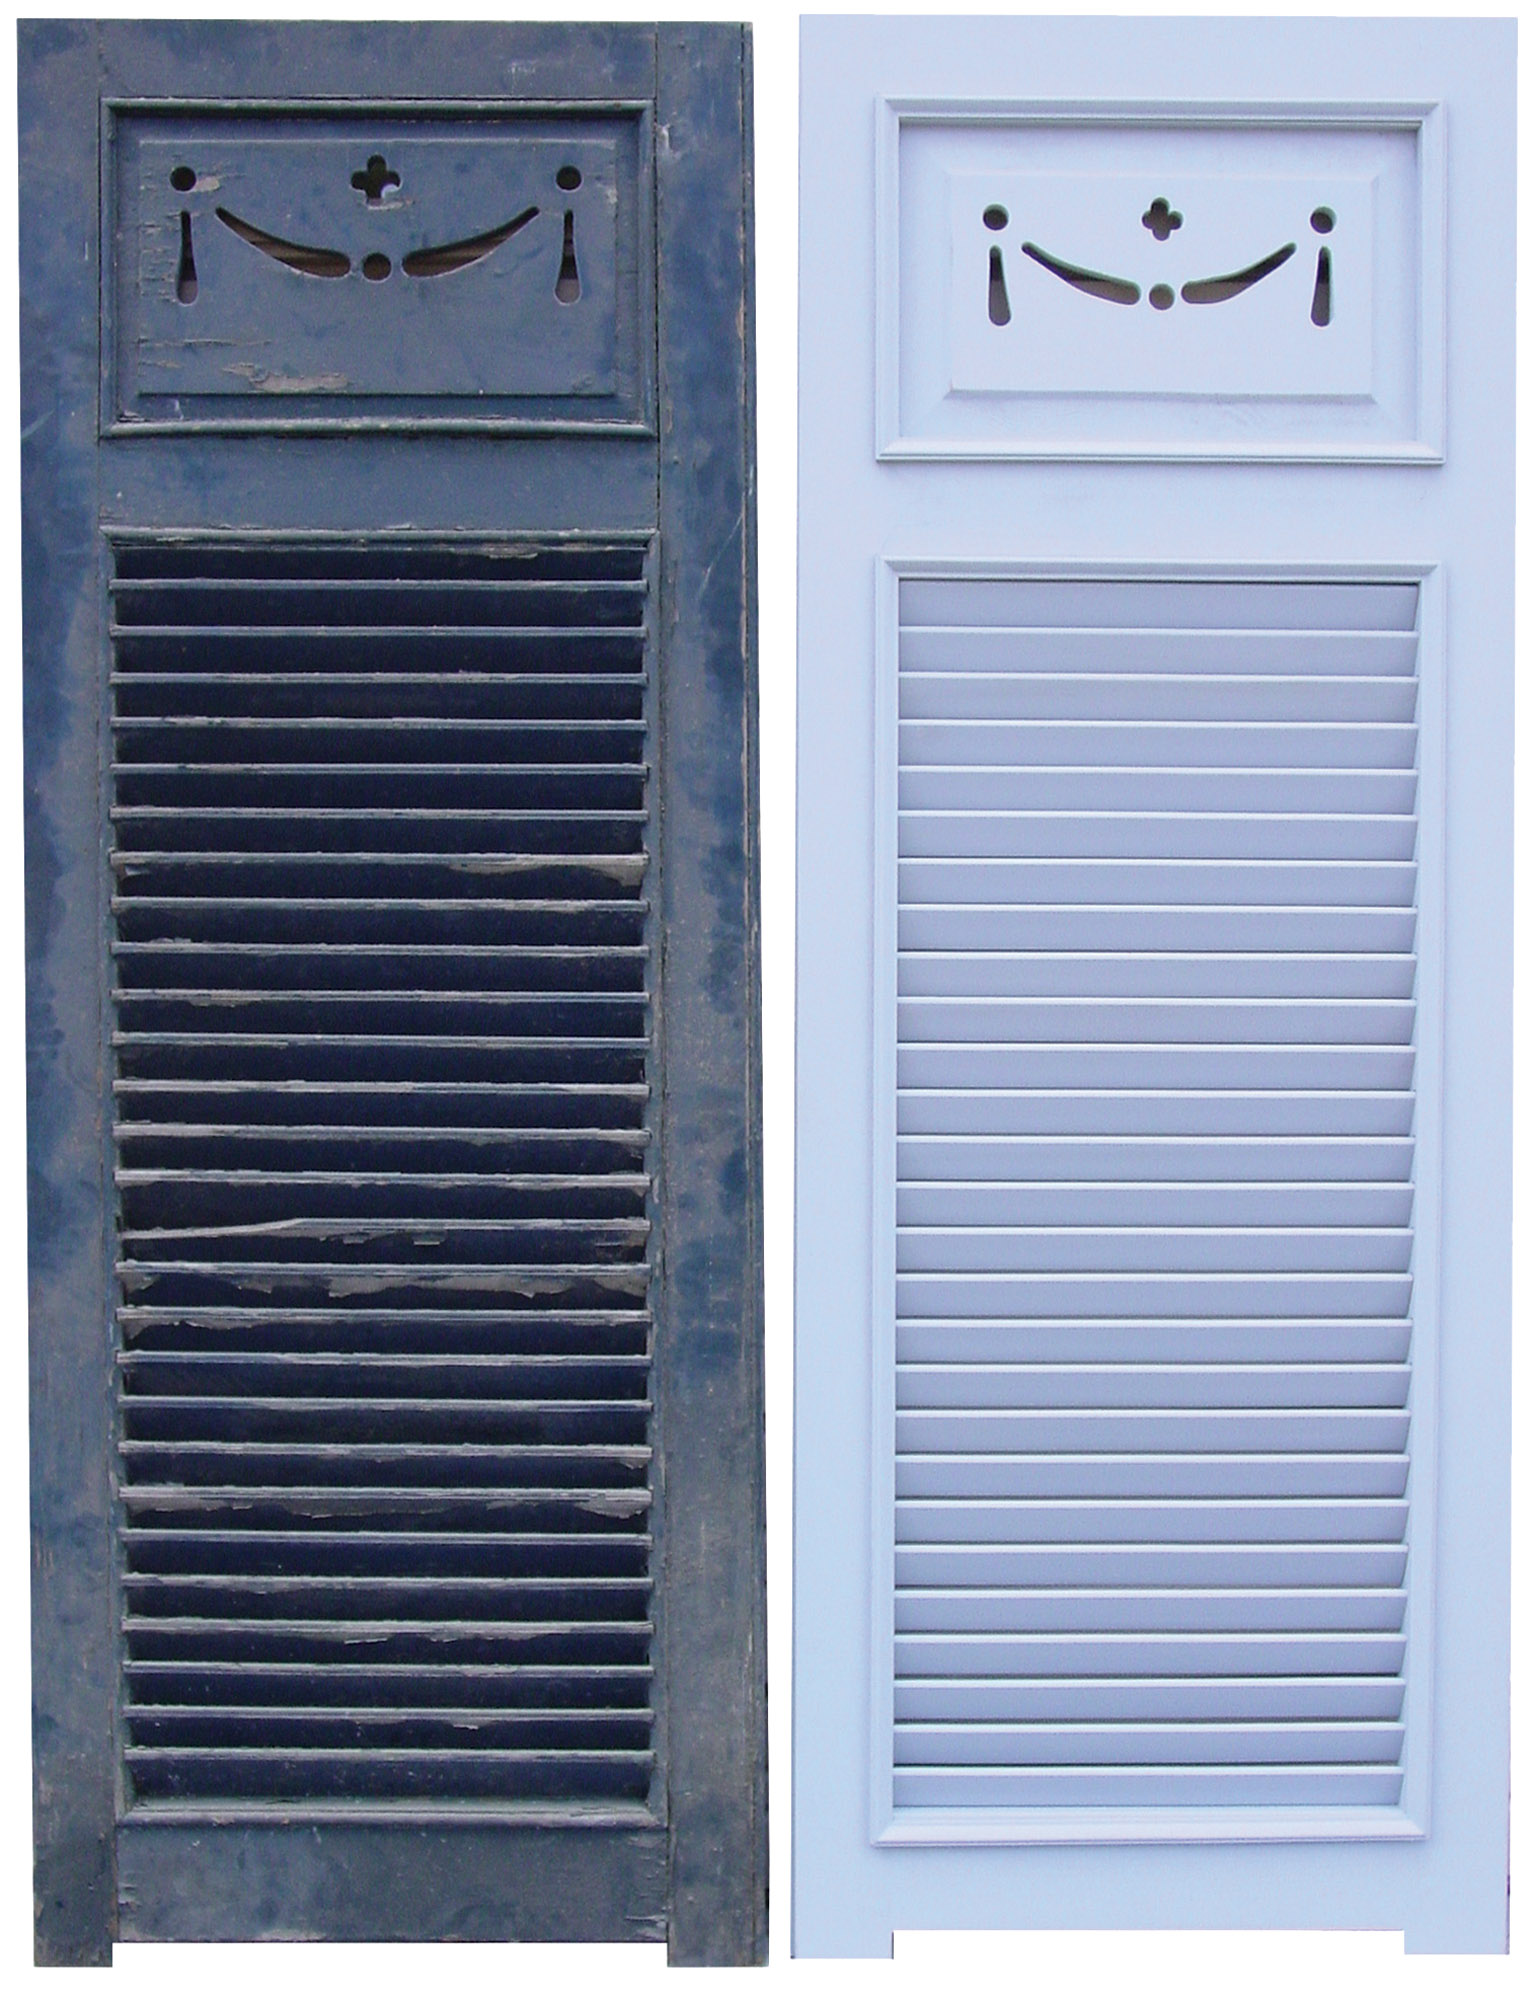 An old louvered shutter—with horns at the bottom of stiles and a delicate swag cutout in a raised panel—next to its replica made by Shuttercraft.